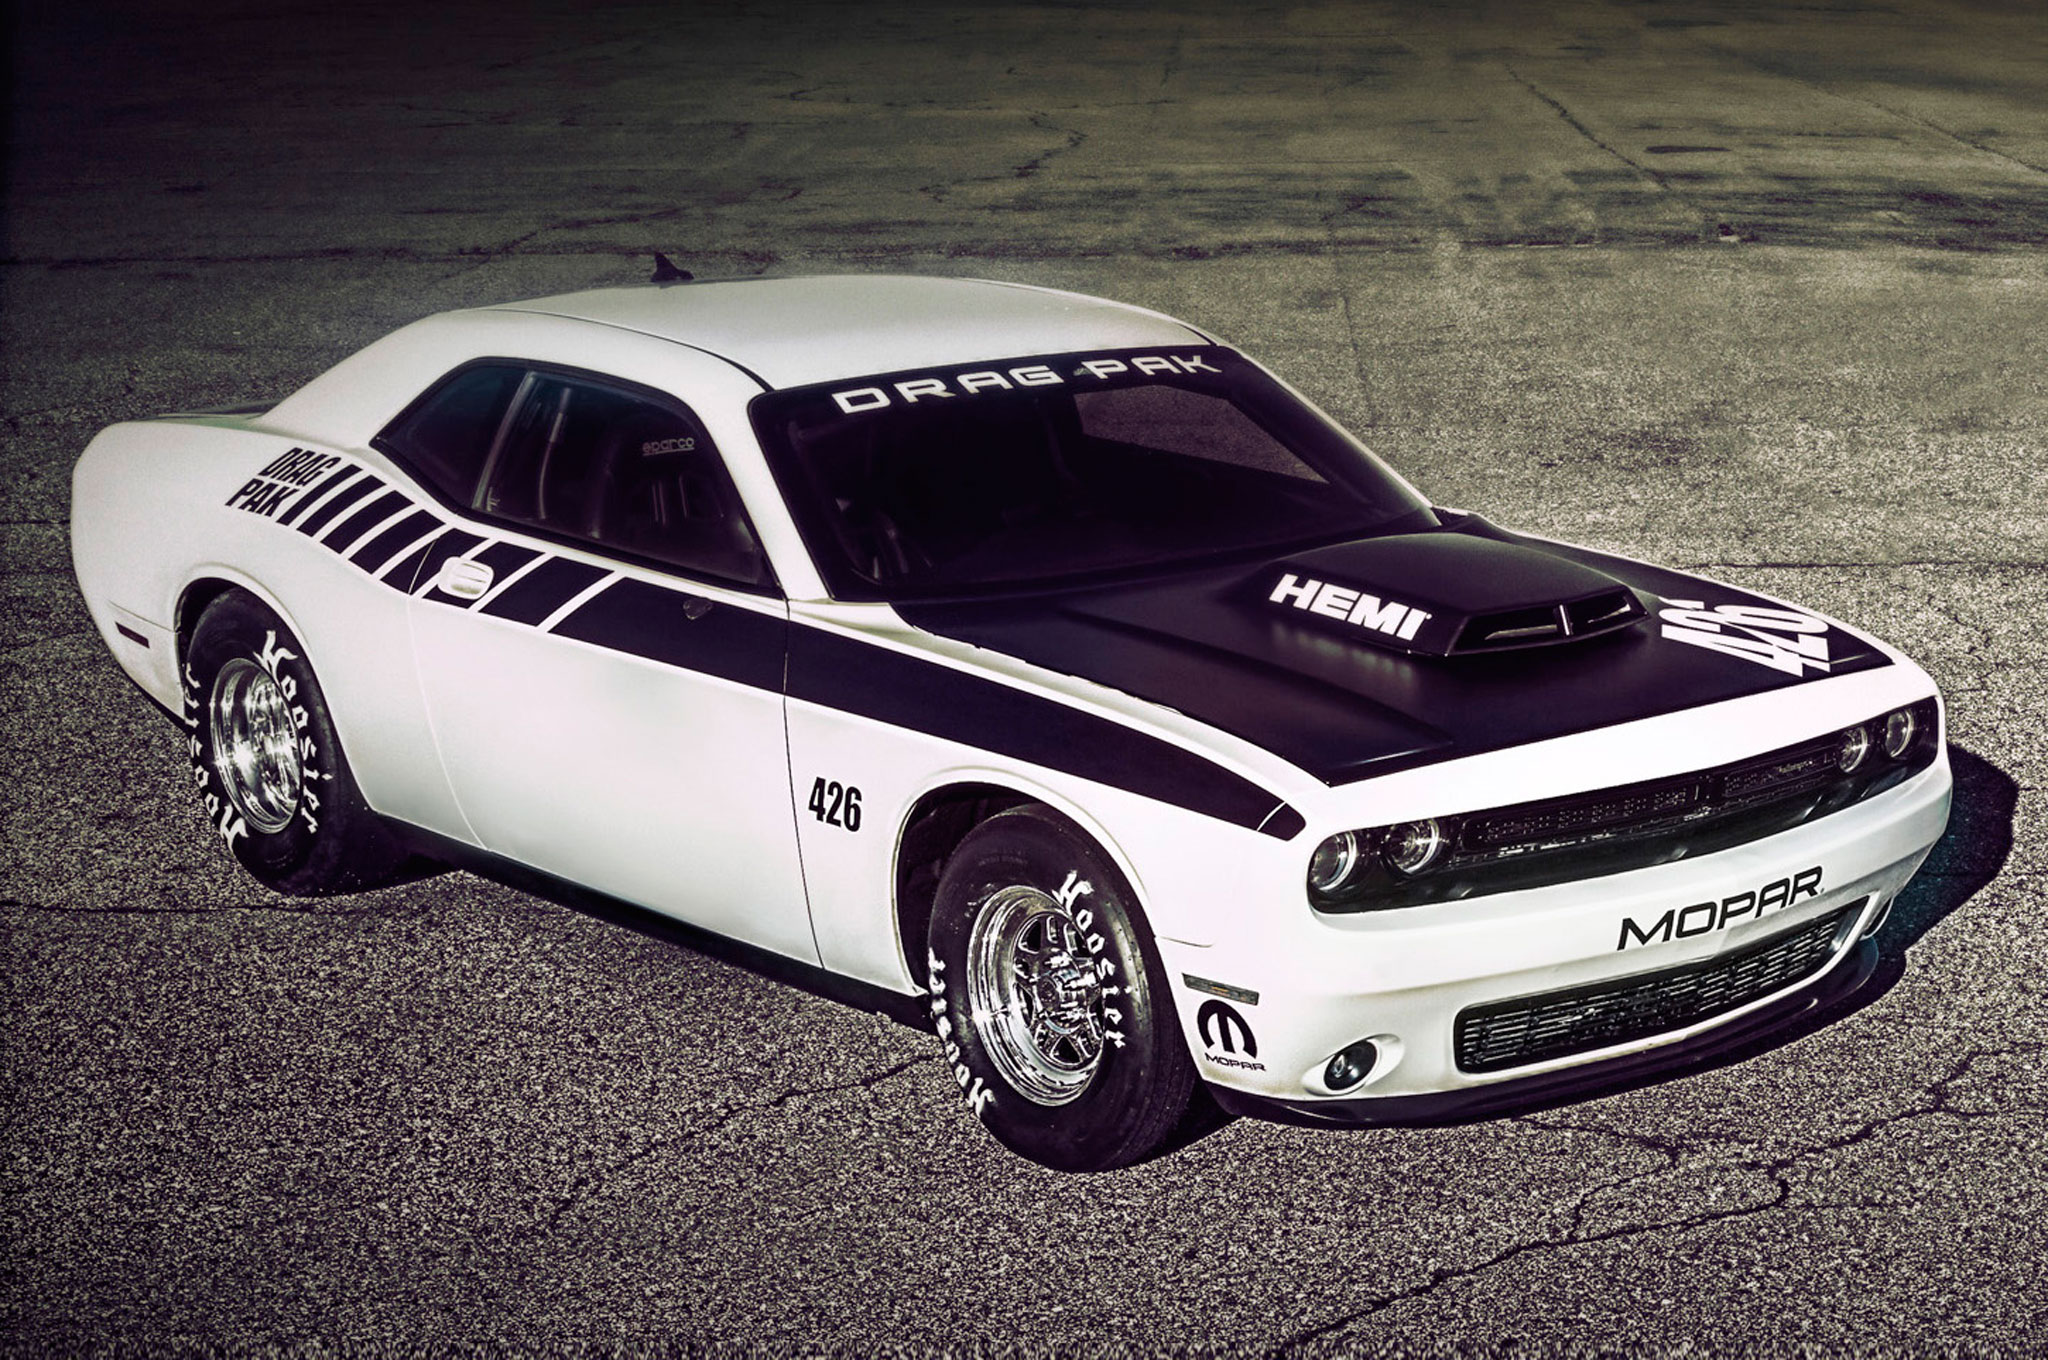 Hellcat Challenger For Sale >> 2015 Mopar Dodge Challenger Drag Pak Offers Two Engine Choices